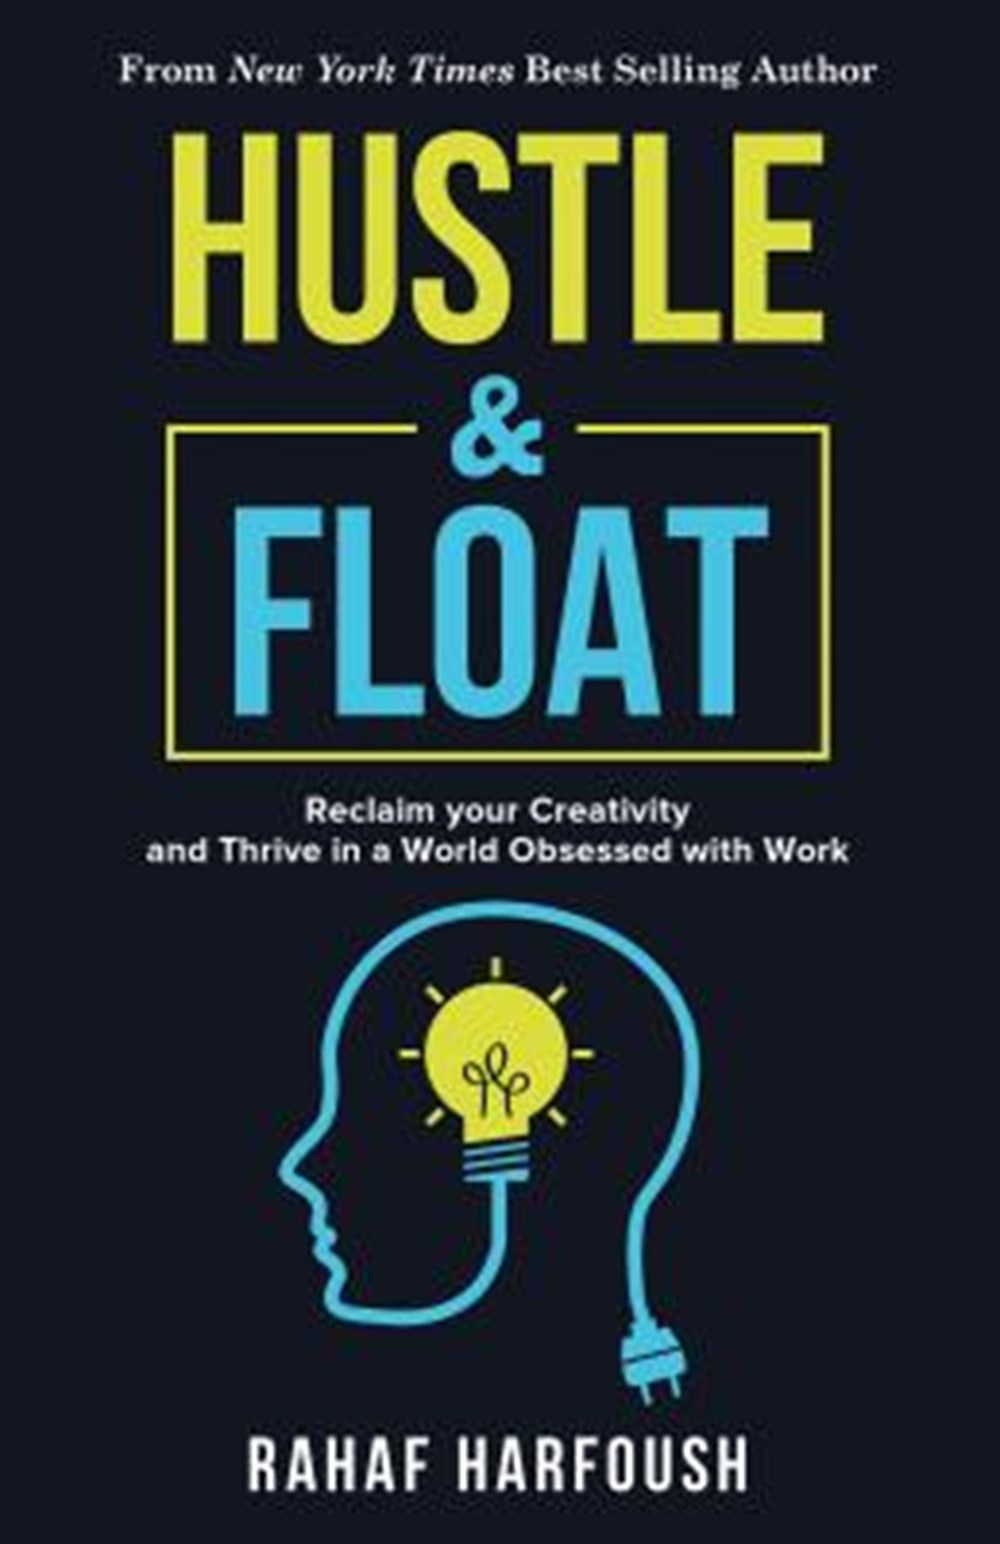 Hustle and Float Reclaim Your Creativity and Thrive in a World Obsessed with Work